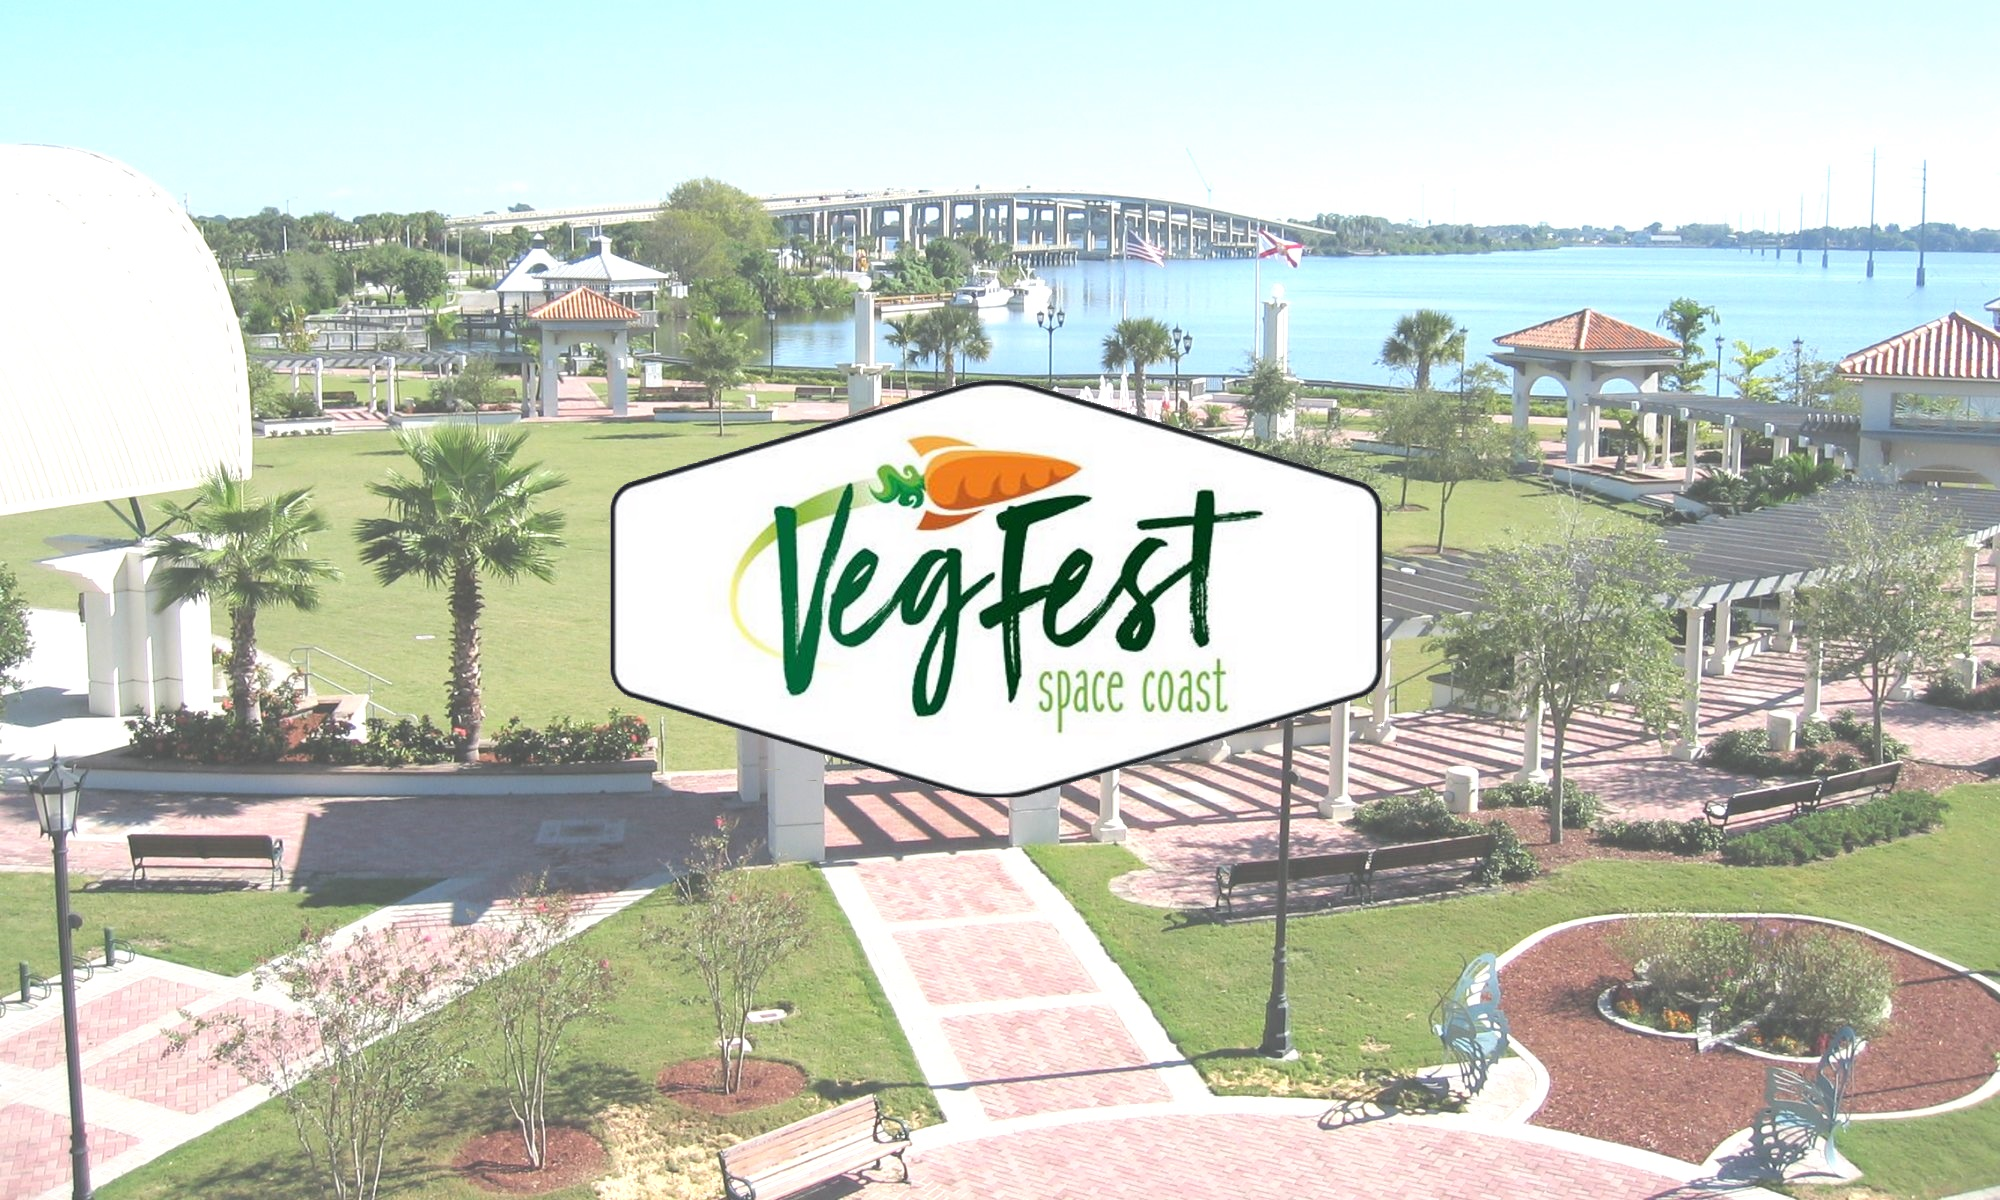 Space Coast VegFest